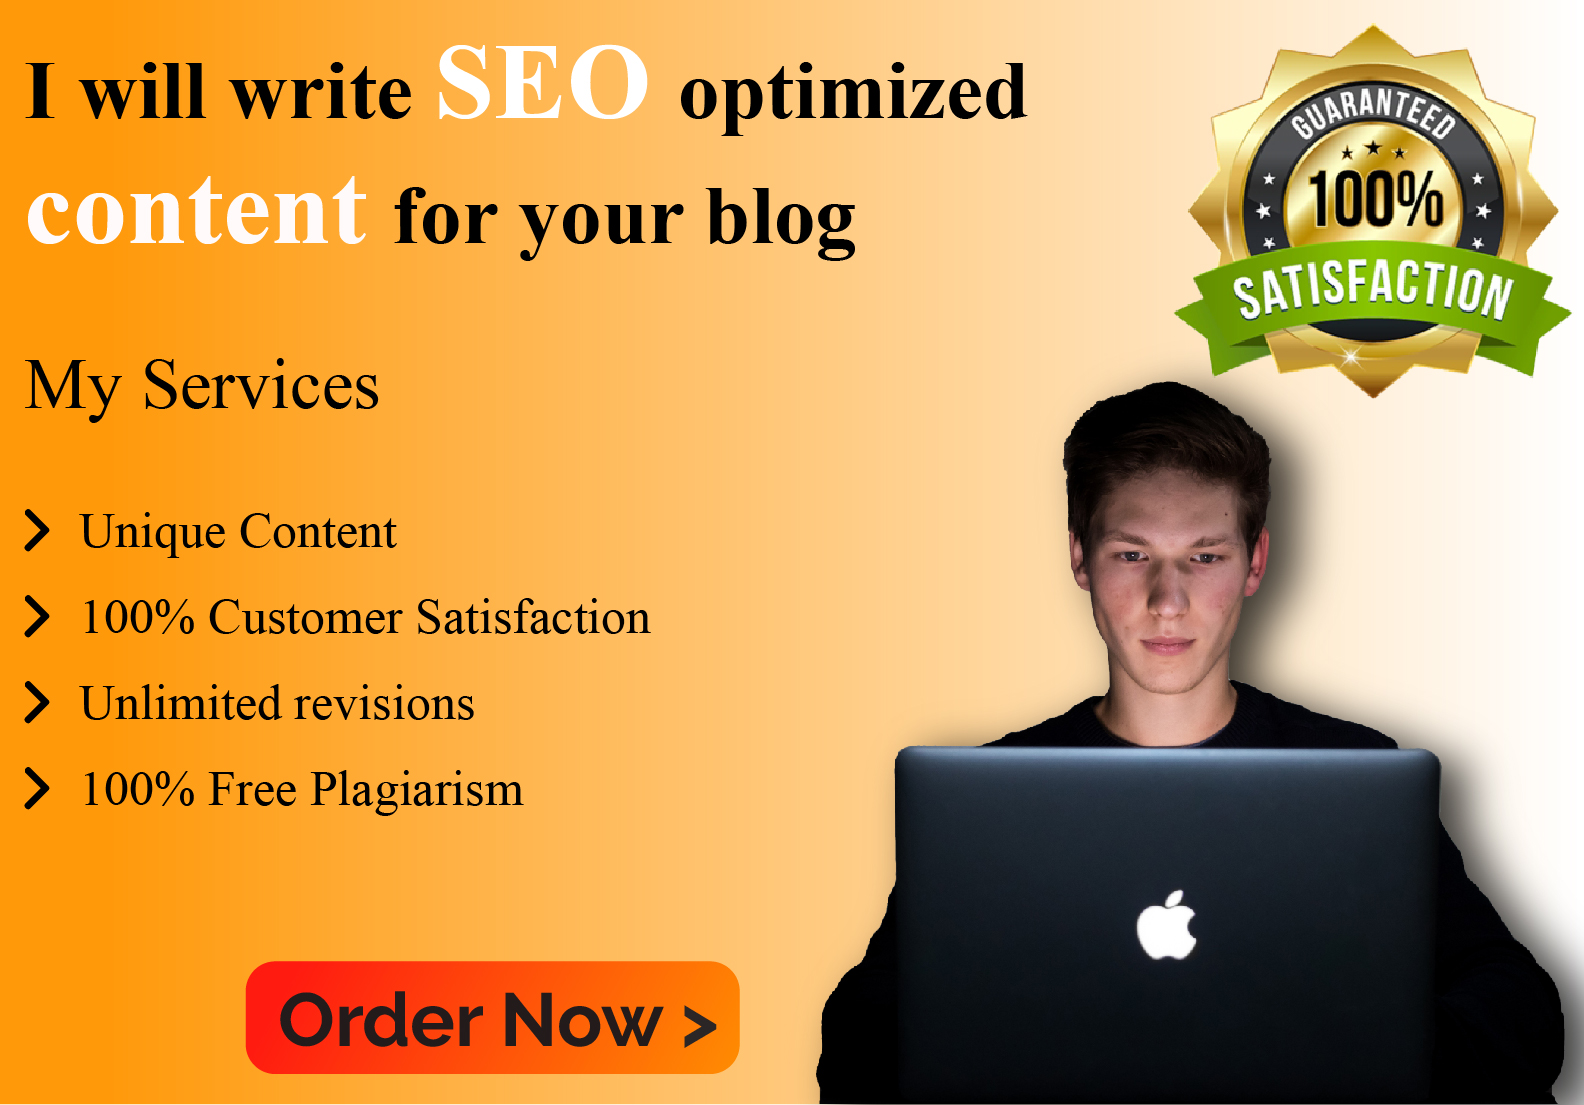 I will write SEO optimized content for your blog